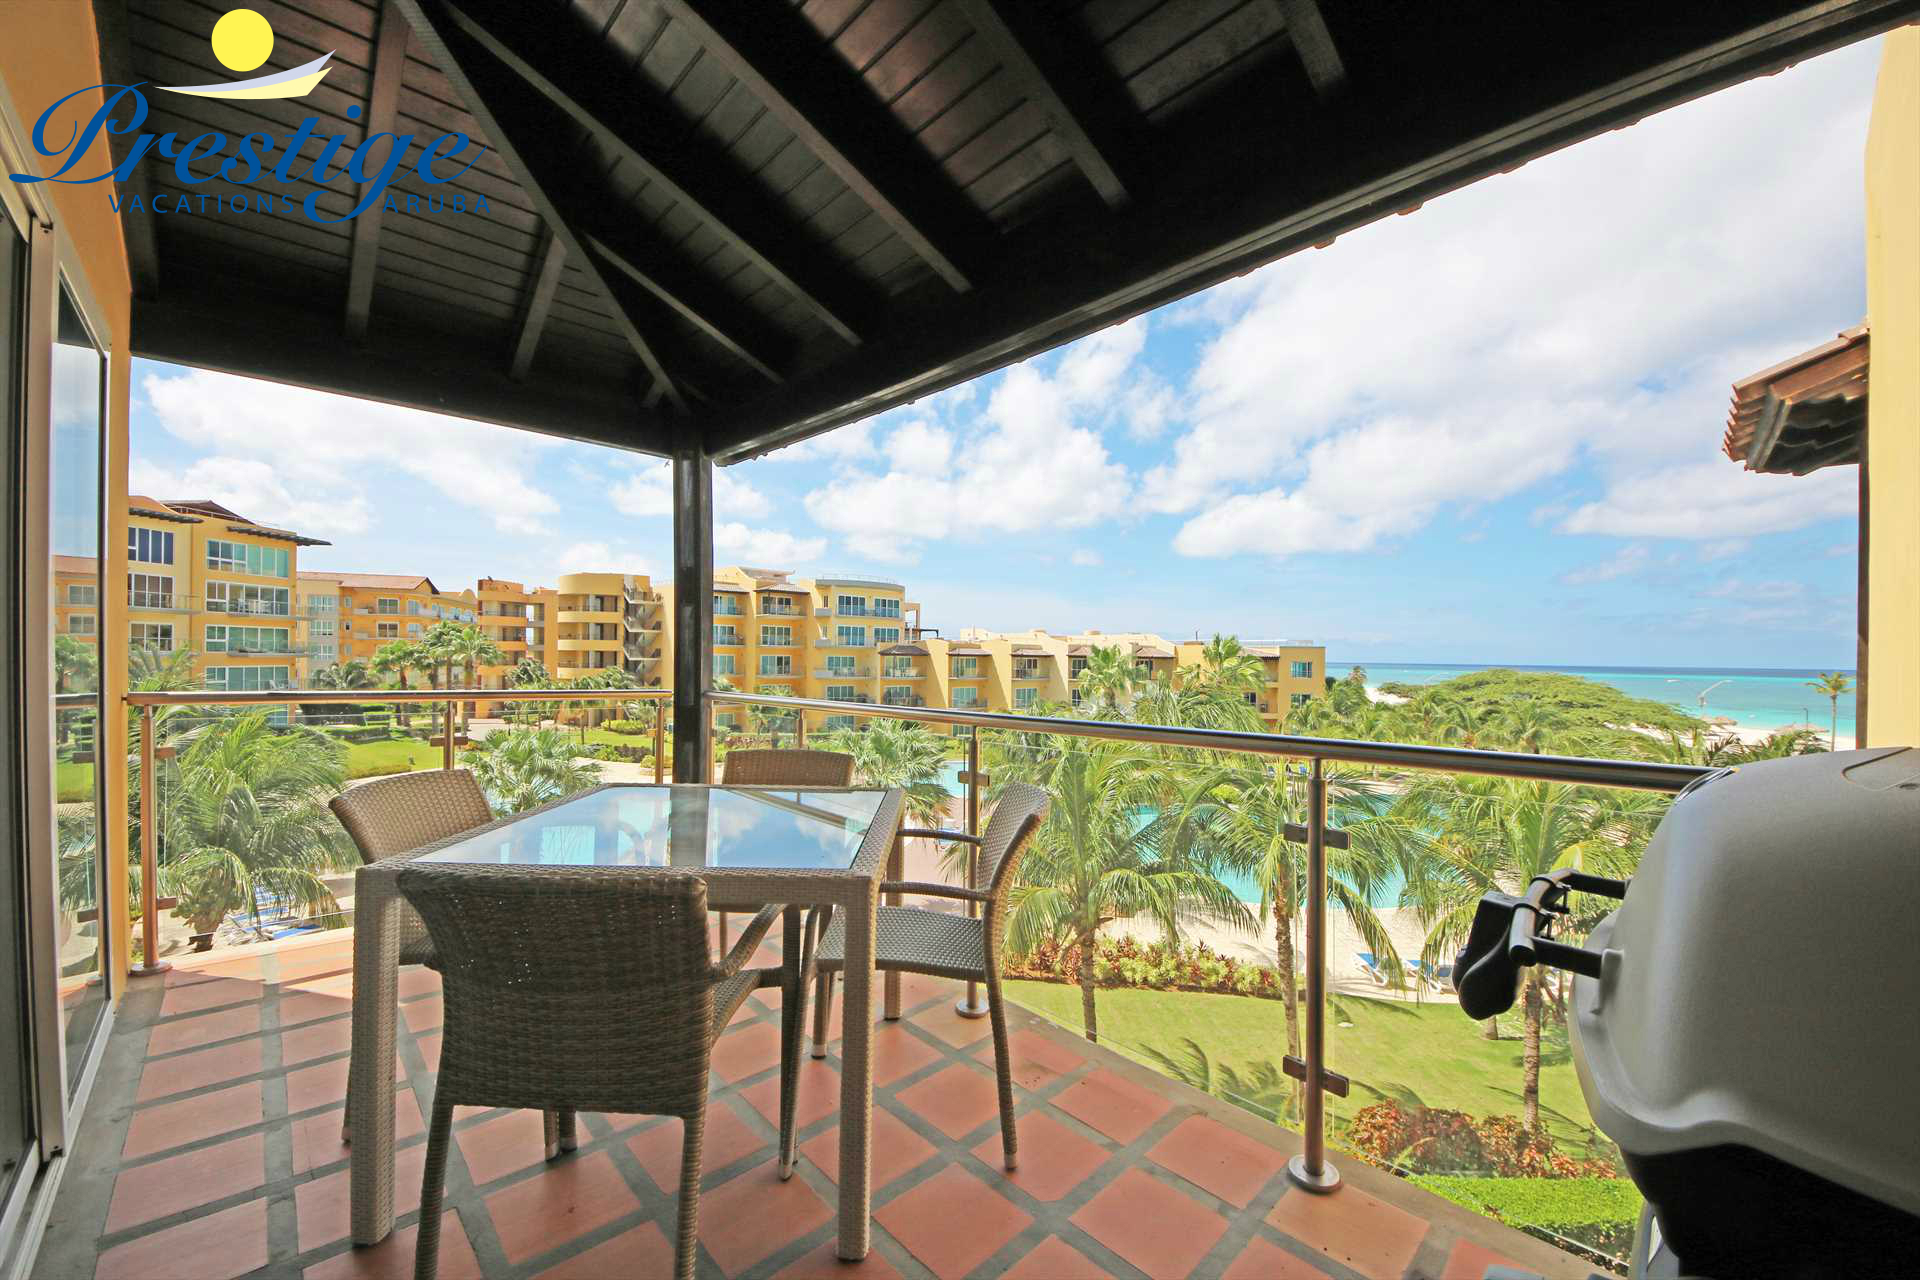 Your ocean and resort pool view from the living room balcony